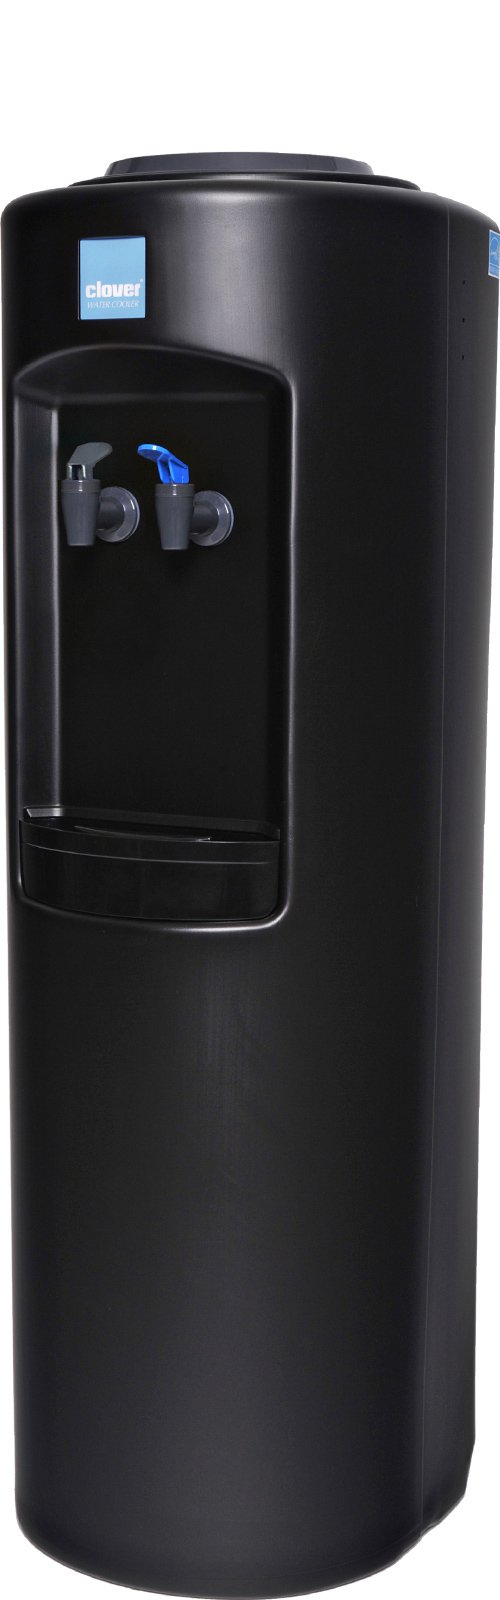 Clover B7B Warm and Cold Water Dispenser Black - Side View